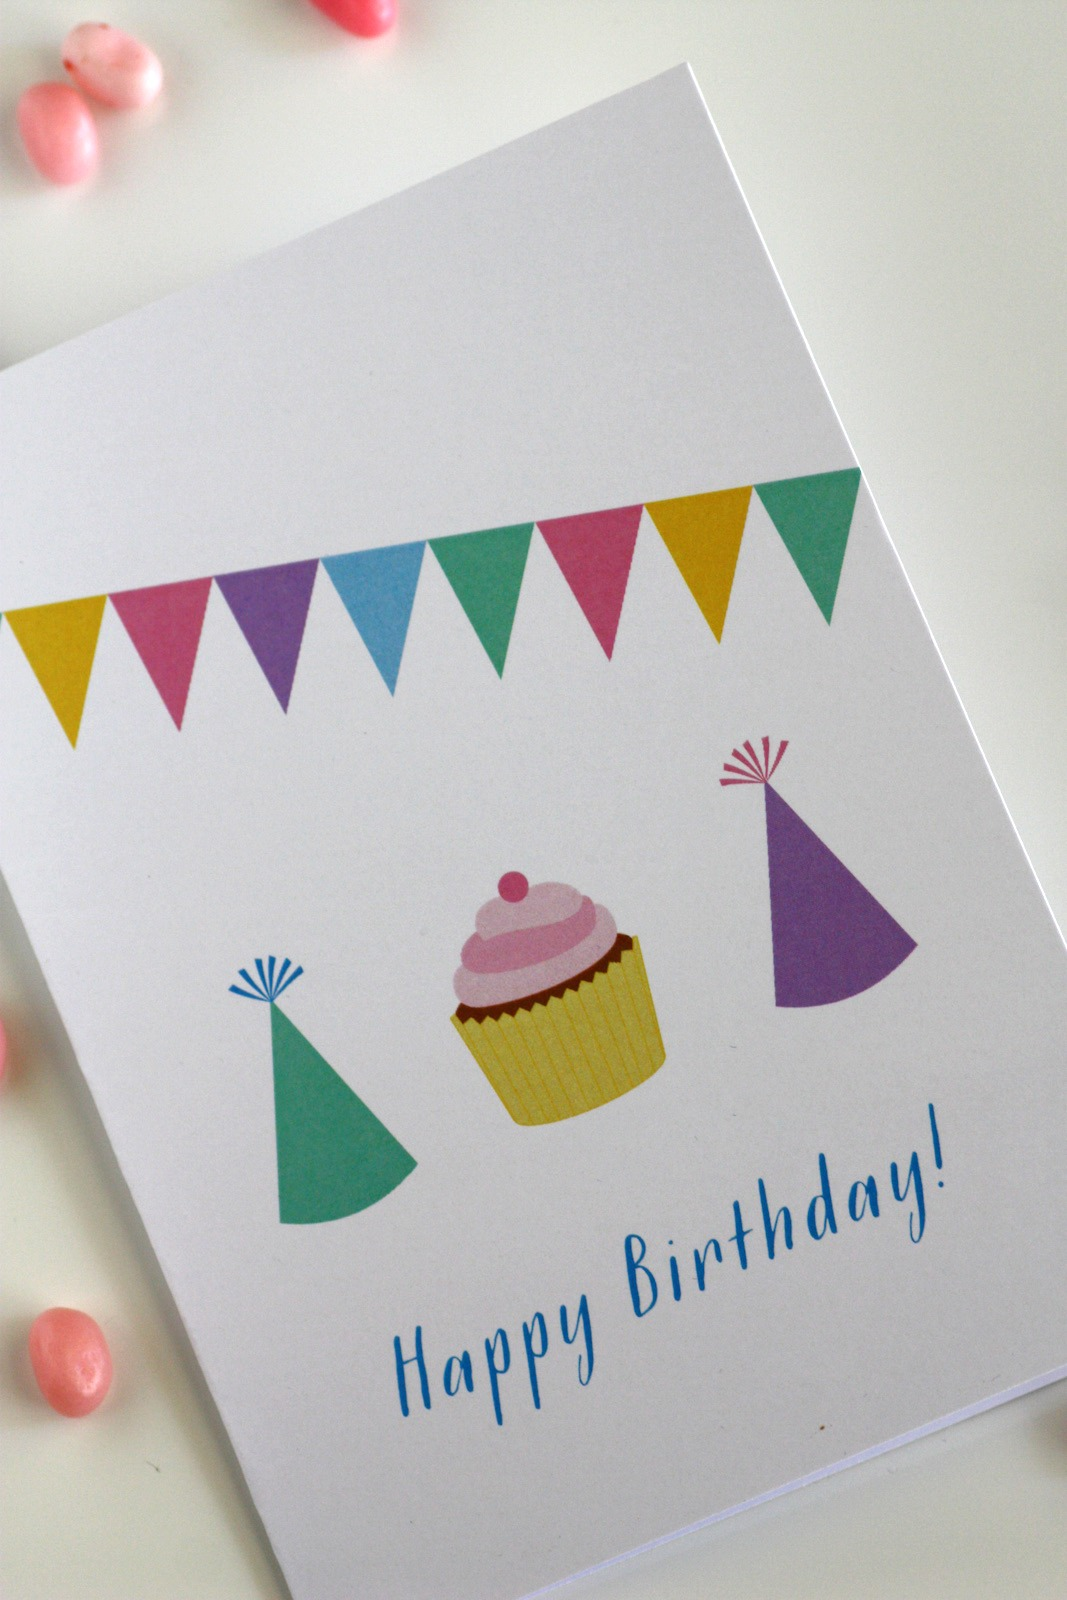 Download The Free Birthday Card Printables Here